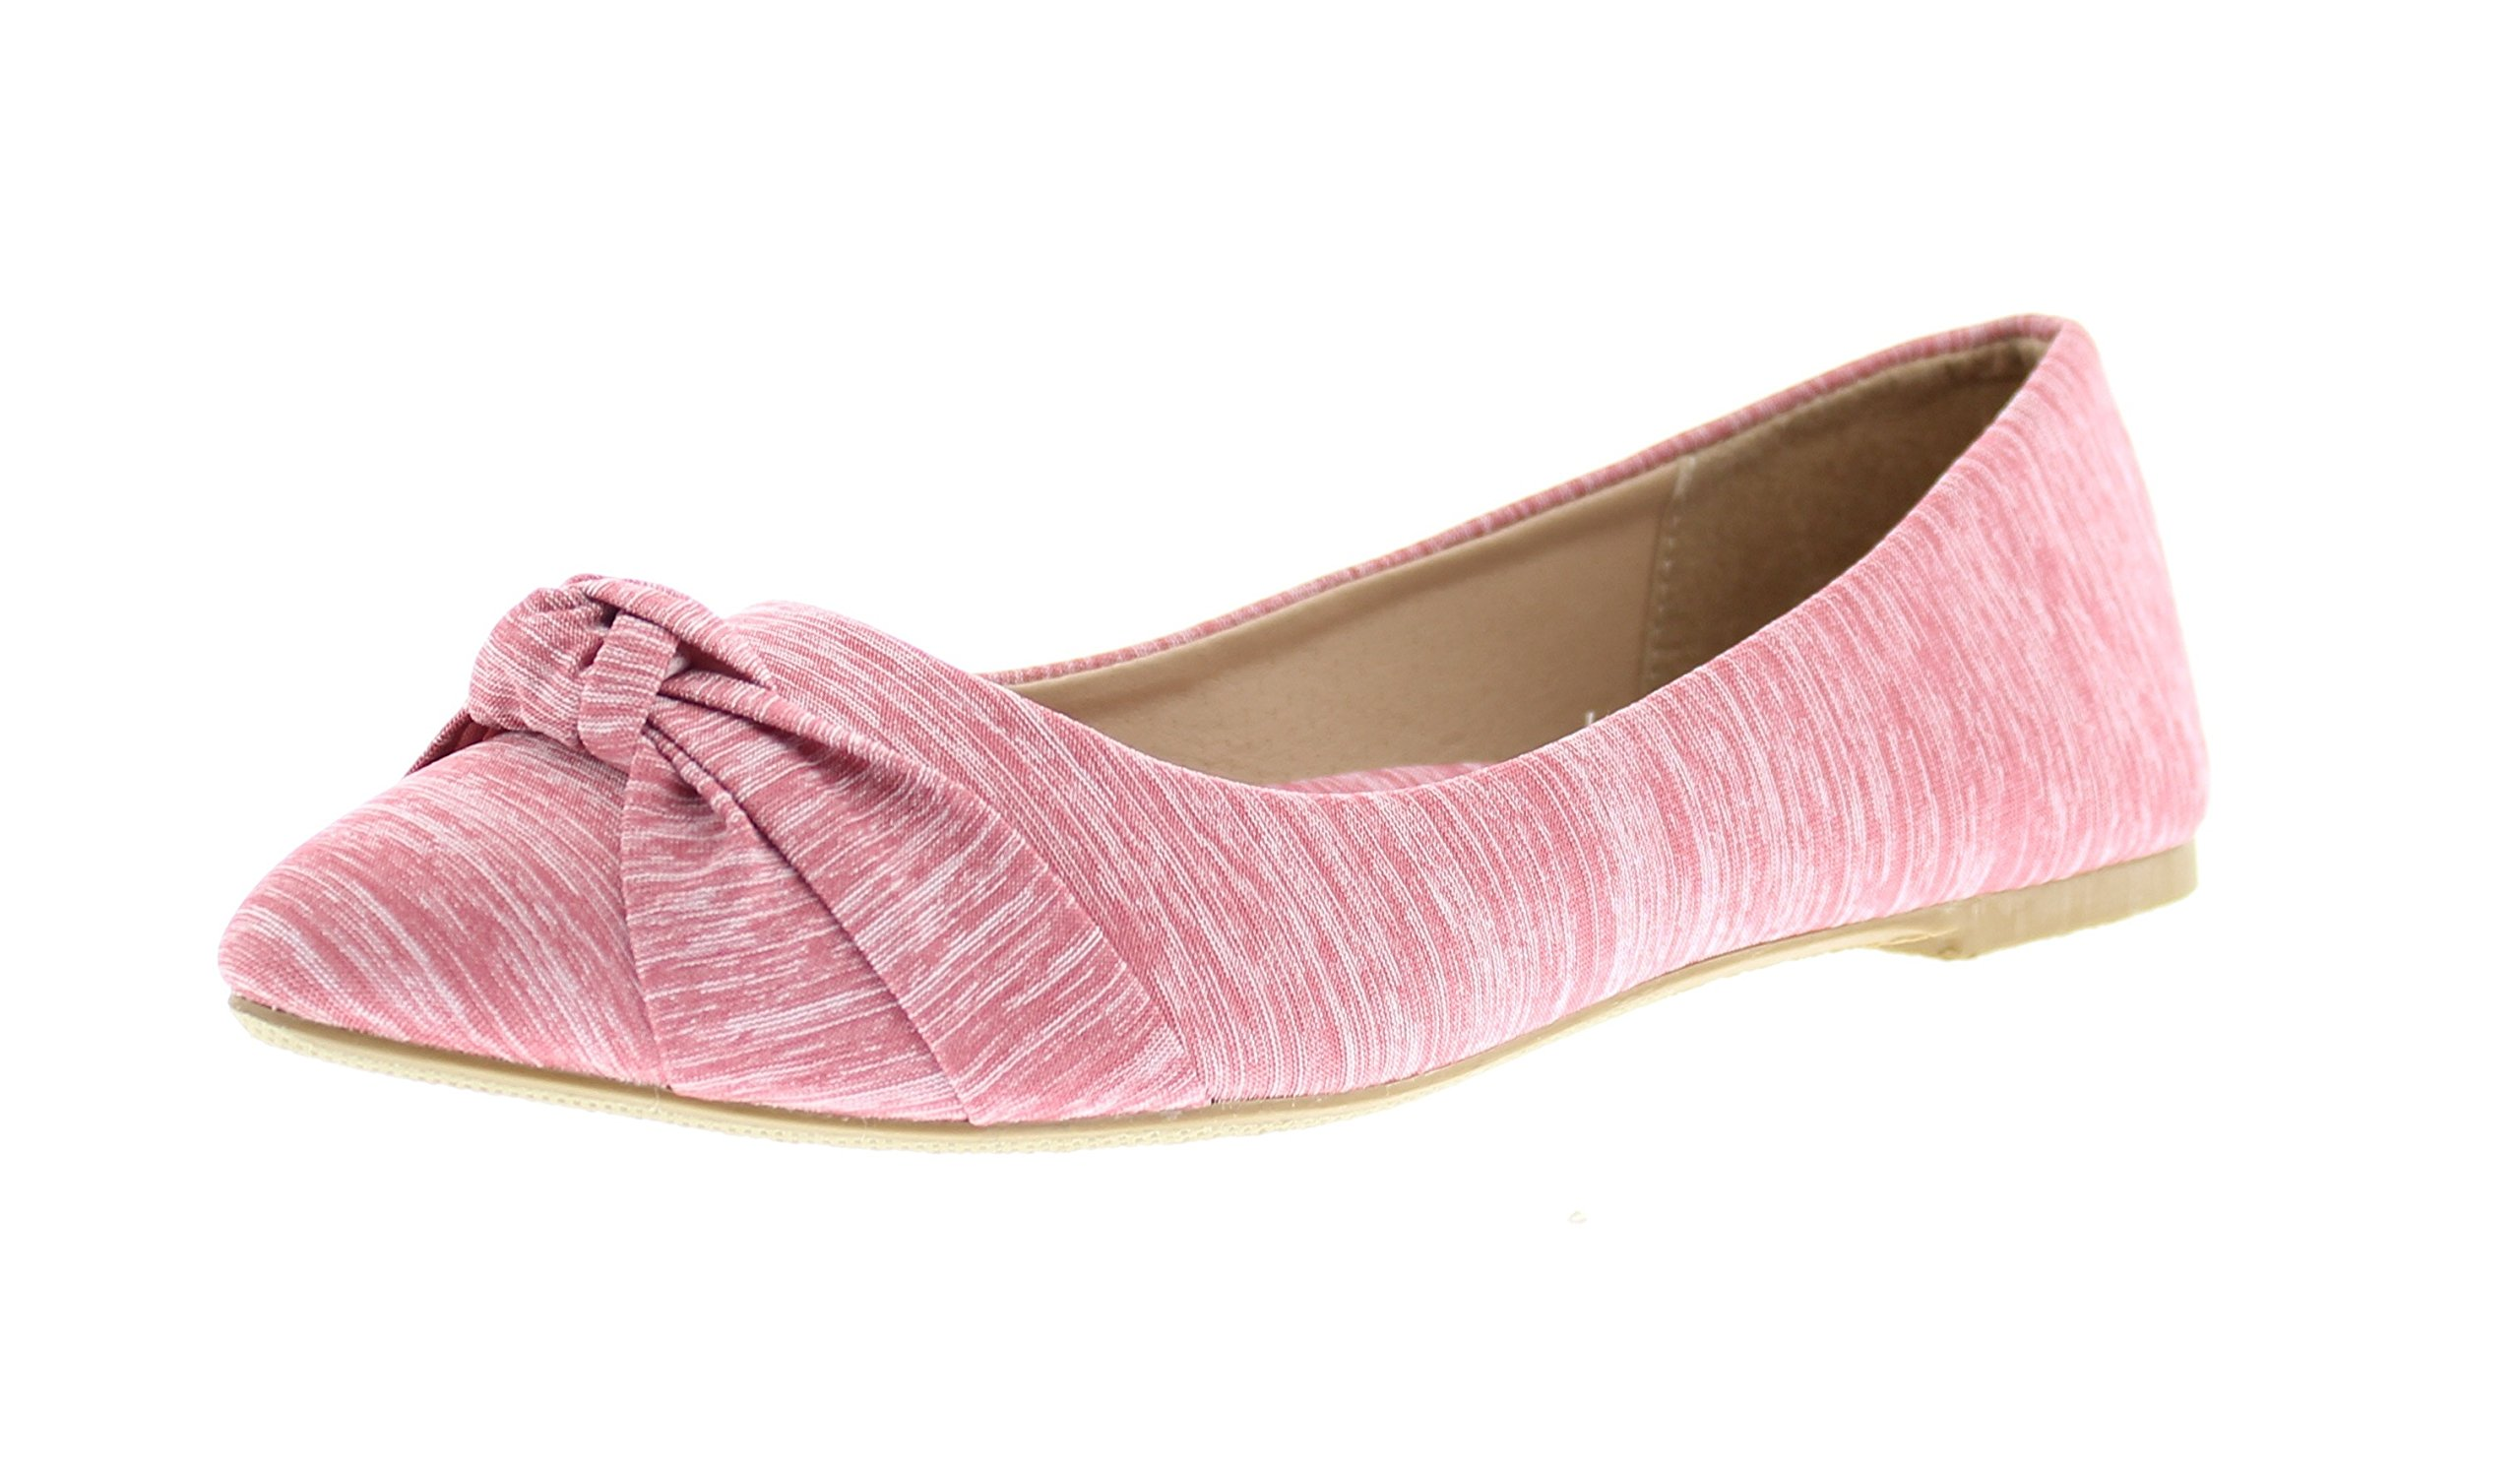 Gold Toe Women's Eve Knit Ruched Knotted Bow Pointed Toe Ballet Flat Dress Slip On Shoe Arch Support Pink 7 US